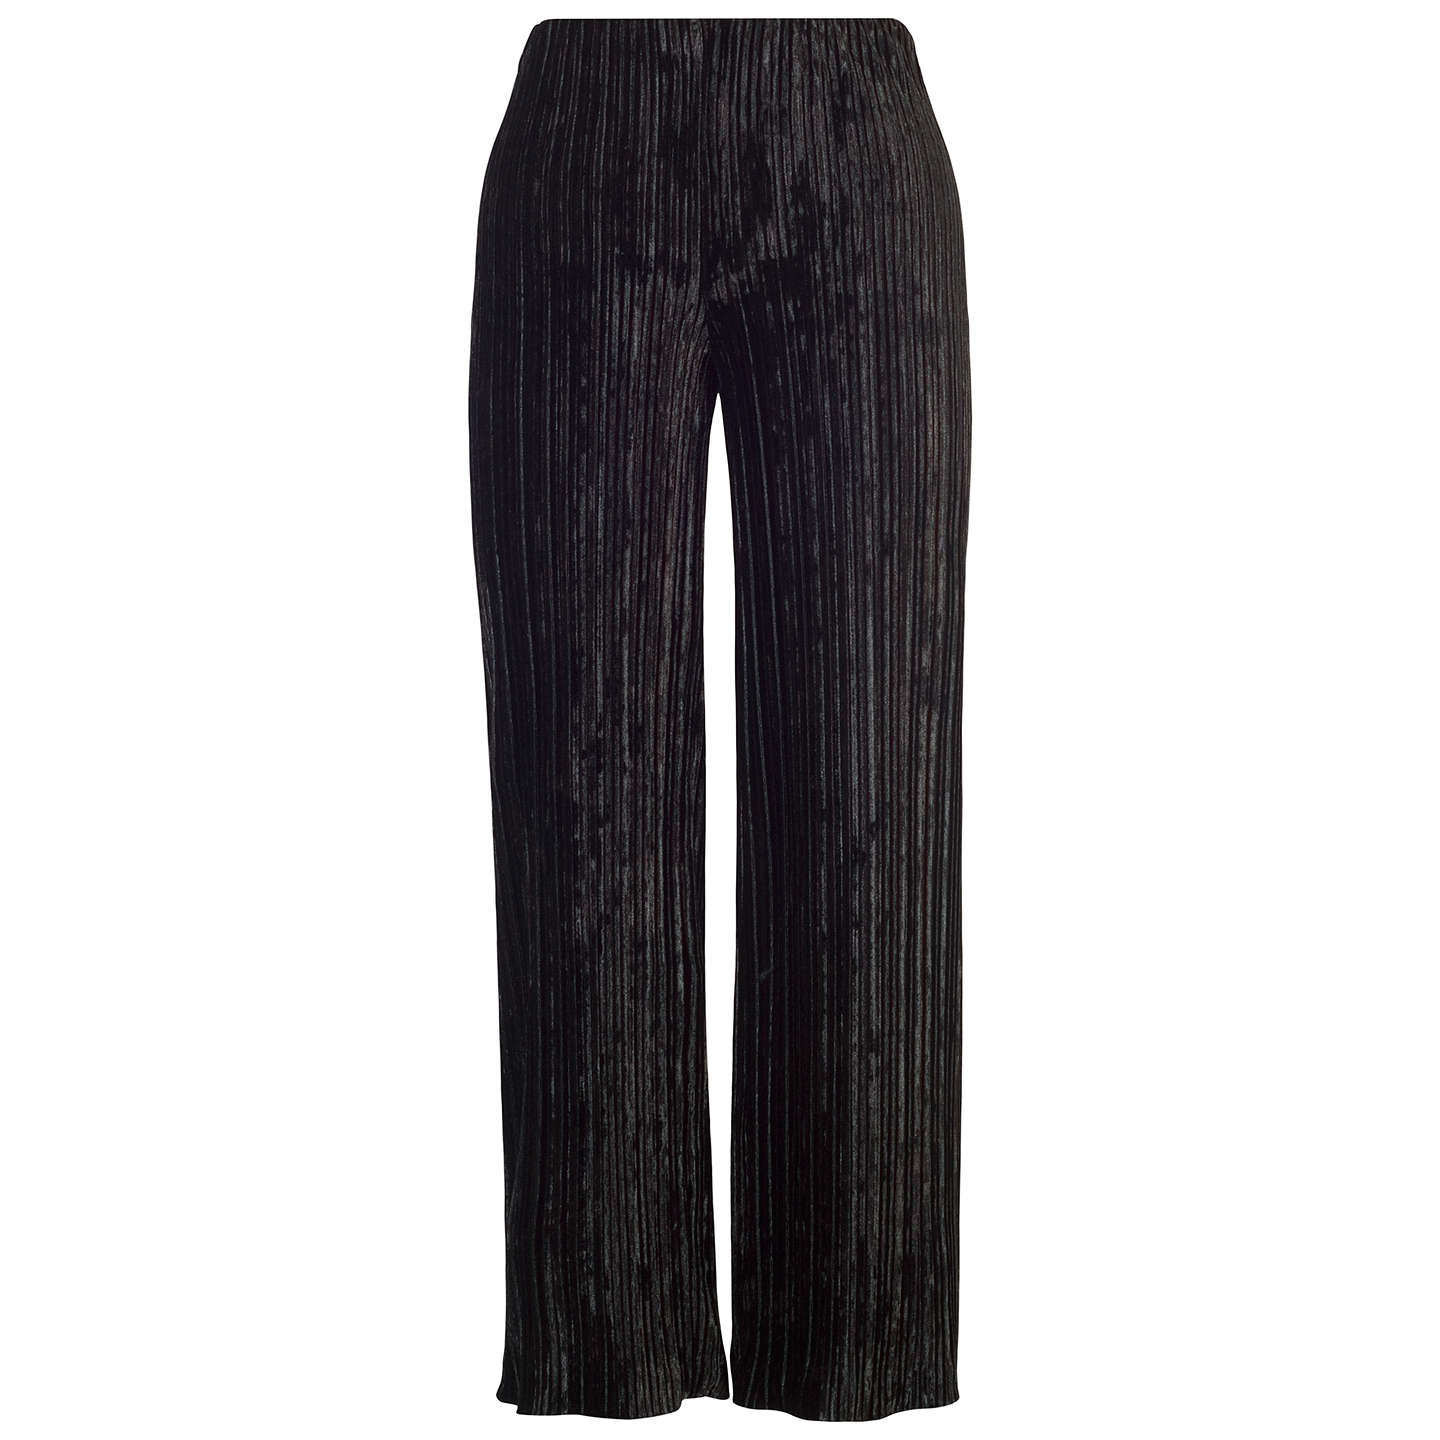 BuyChesca Pleated Velvet Trousers, Black, 12-14 Online at johnlewis.com